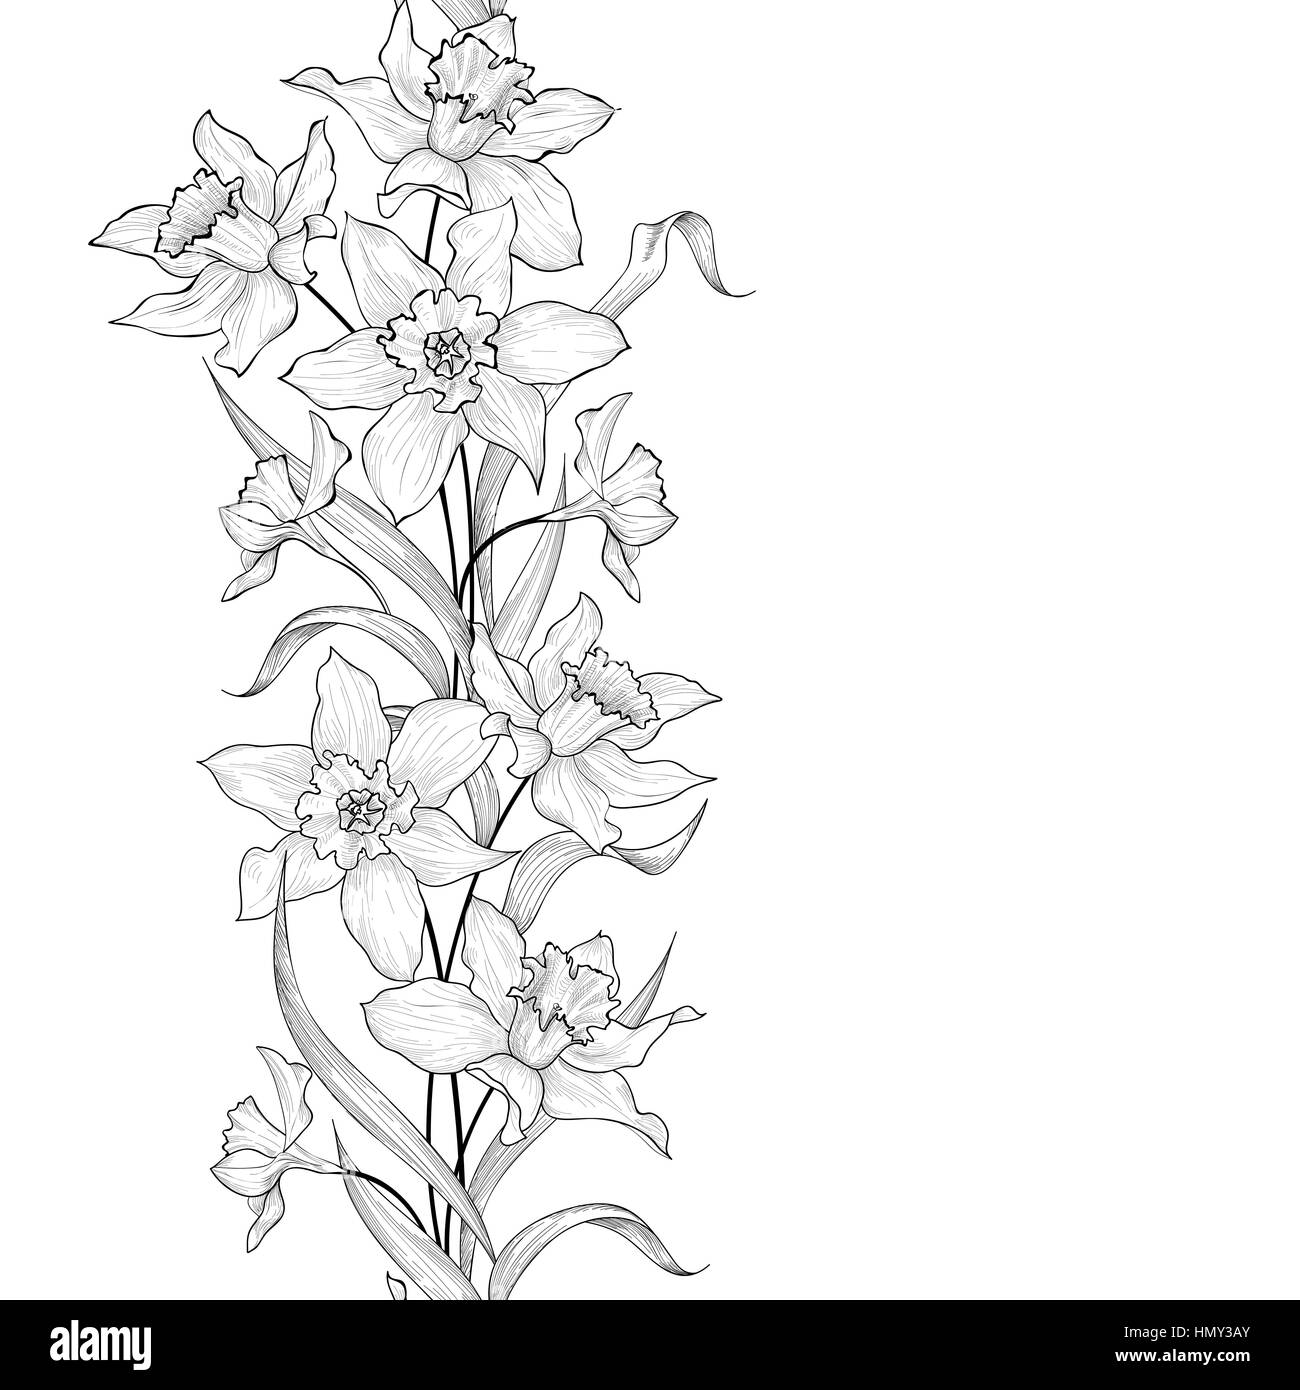 Drawing Vertical Lines In Html : Floral garland seamless pattern flower engraving